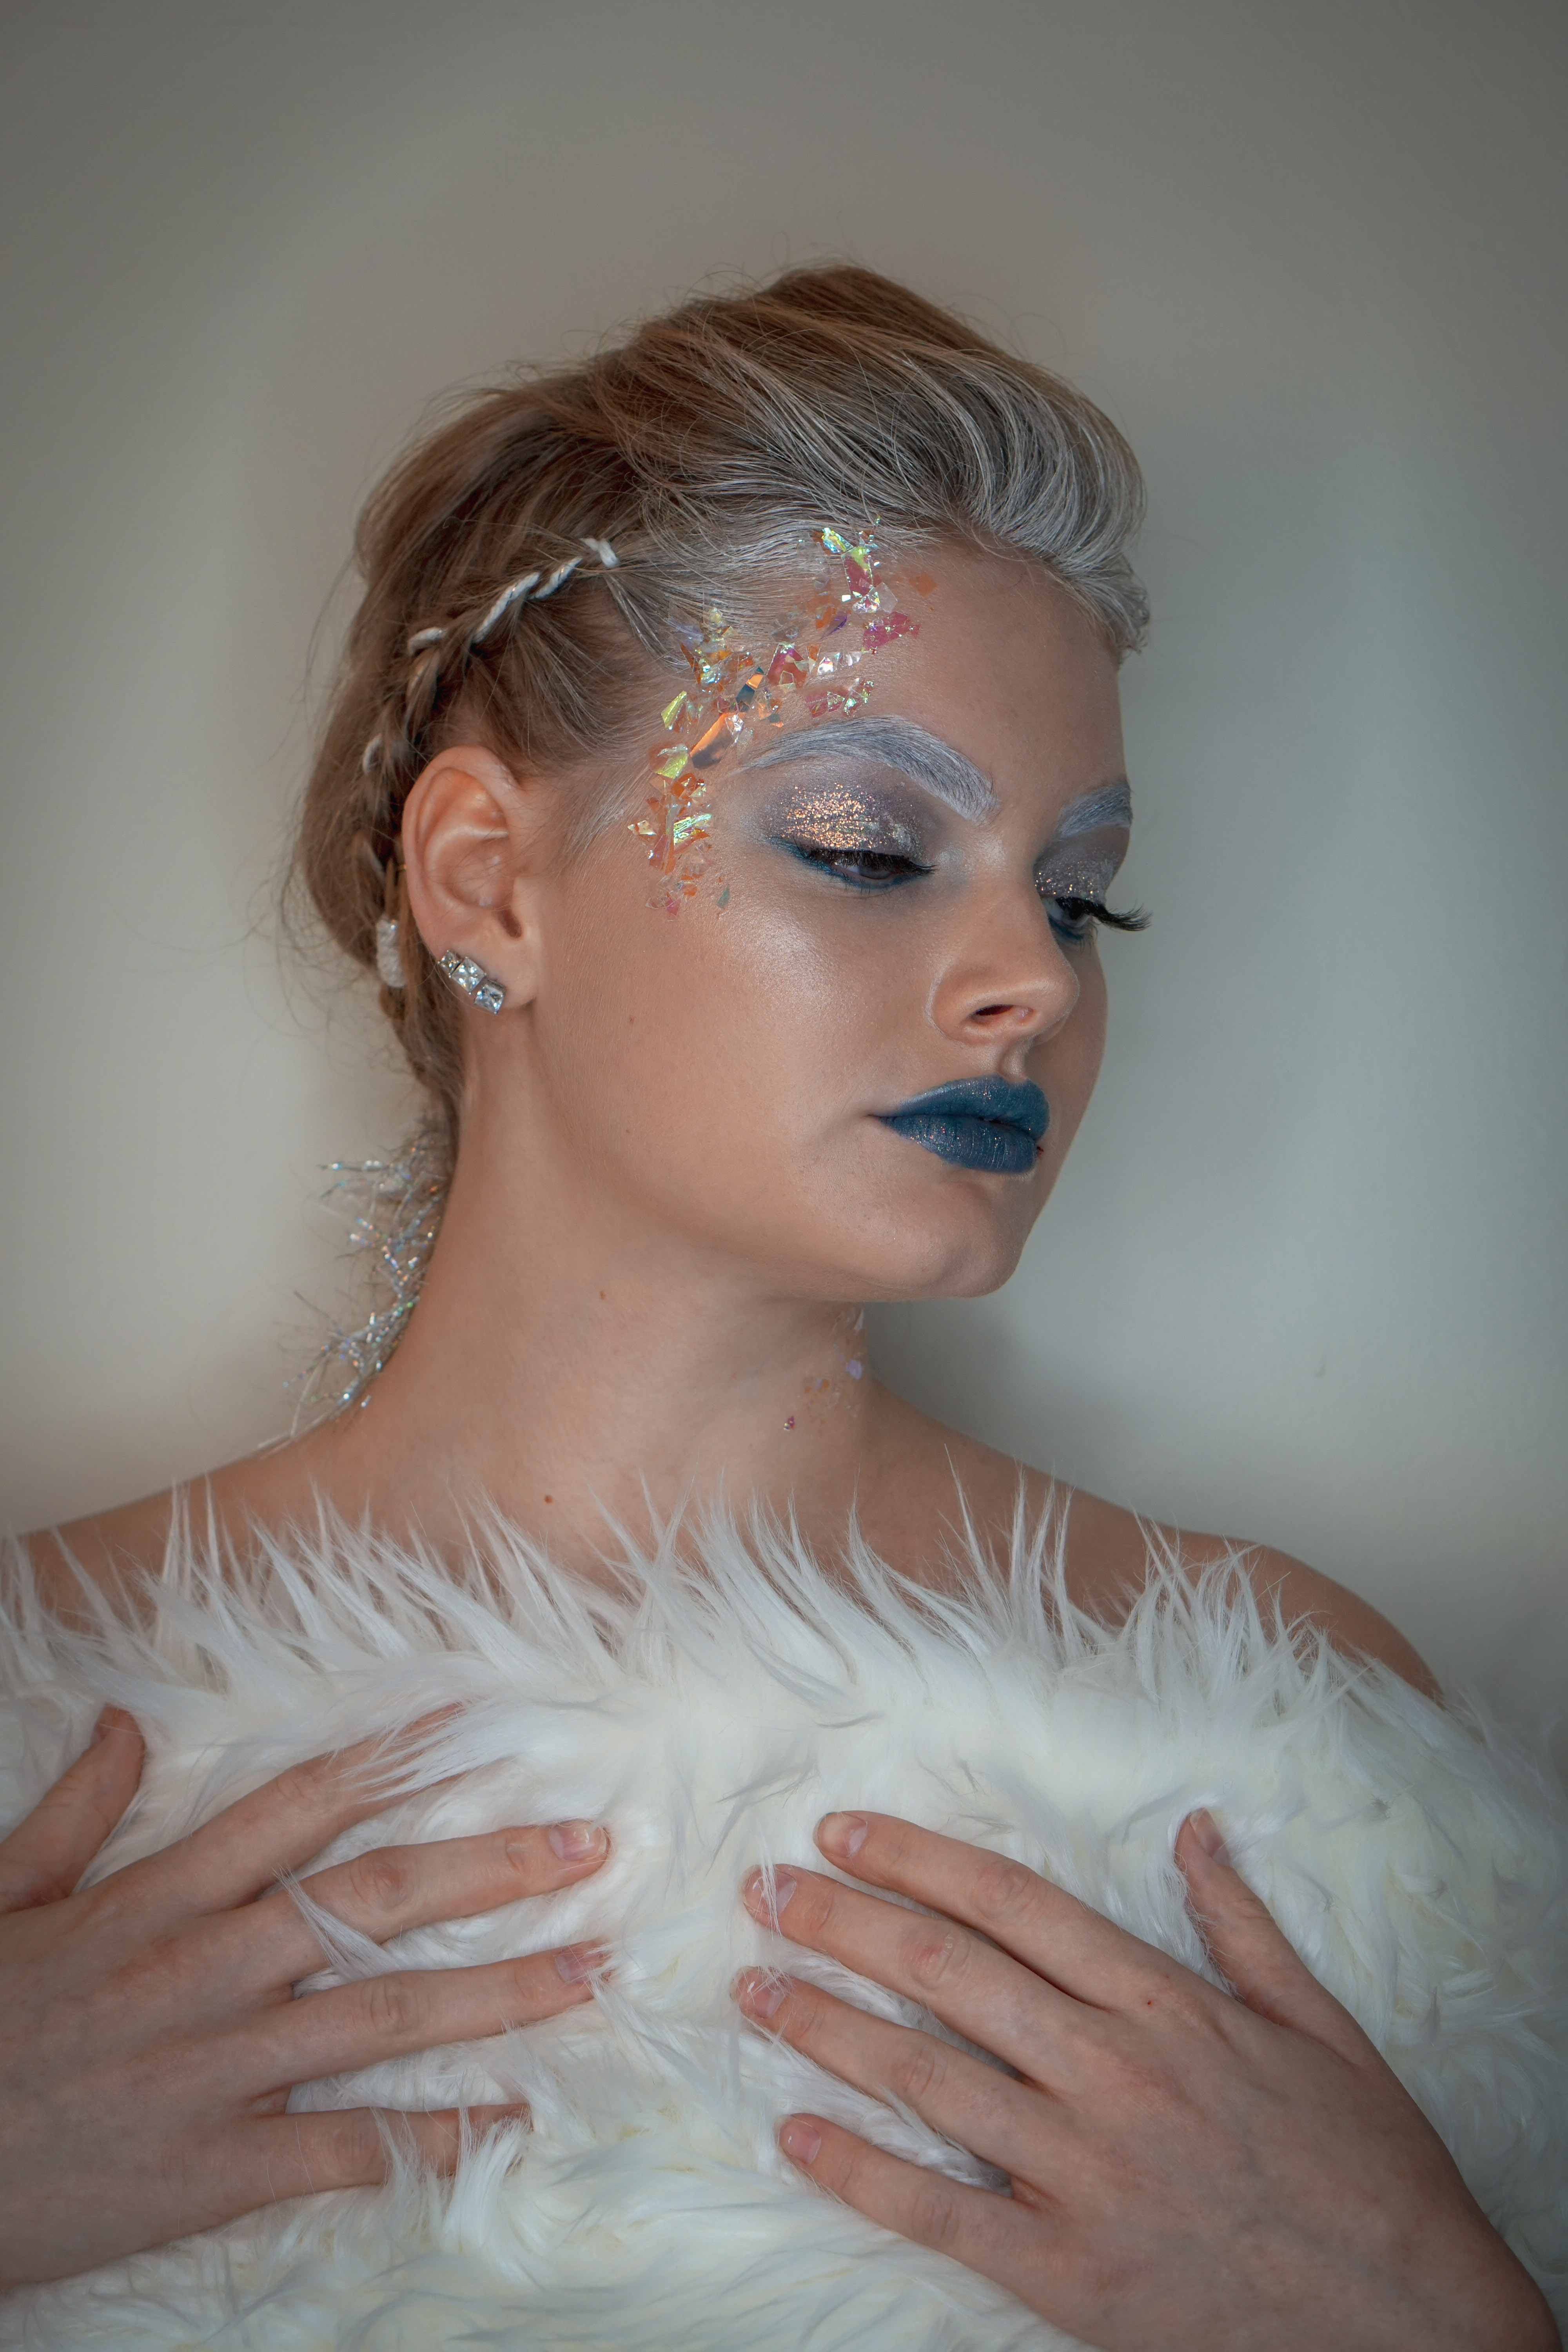 Ice Princess by JoAnn from The Style Witch: Step 1. Blow out all hair with a medium sized round brush. Step 2. Create 3 sections. Braid side sections. Tease mohawk section, fan out, and use a small rubber band to secure. Step 3. Use icy yard and cord to adorn the hair (Image courtesy of Style Witch).